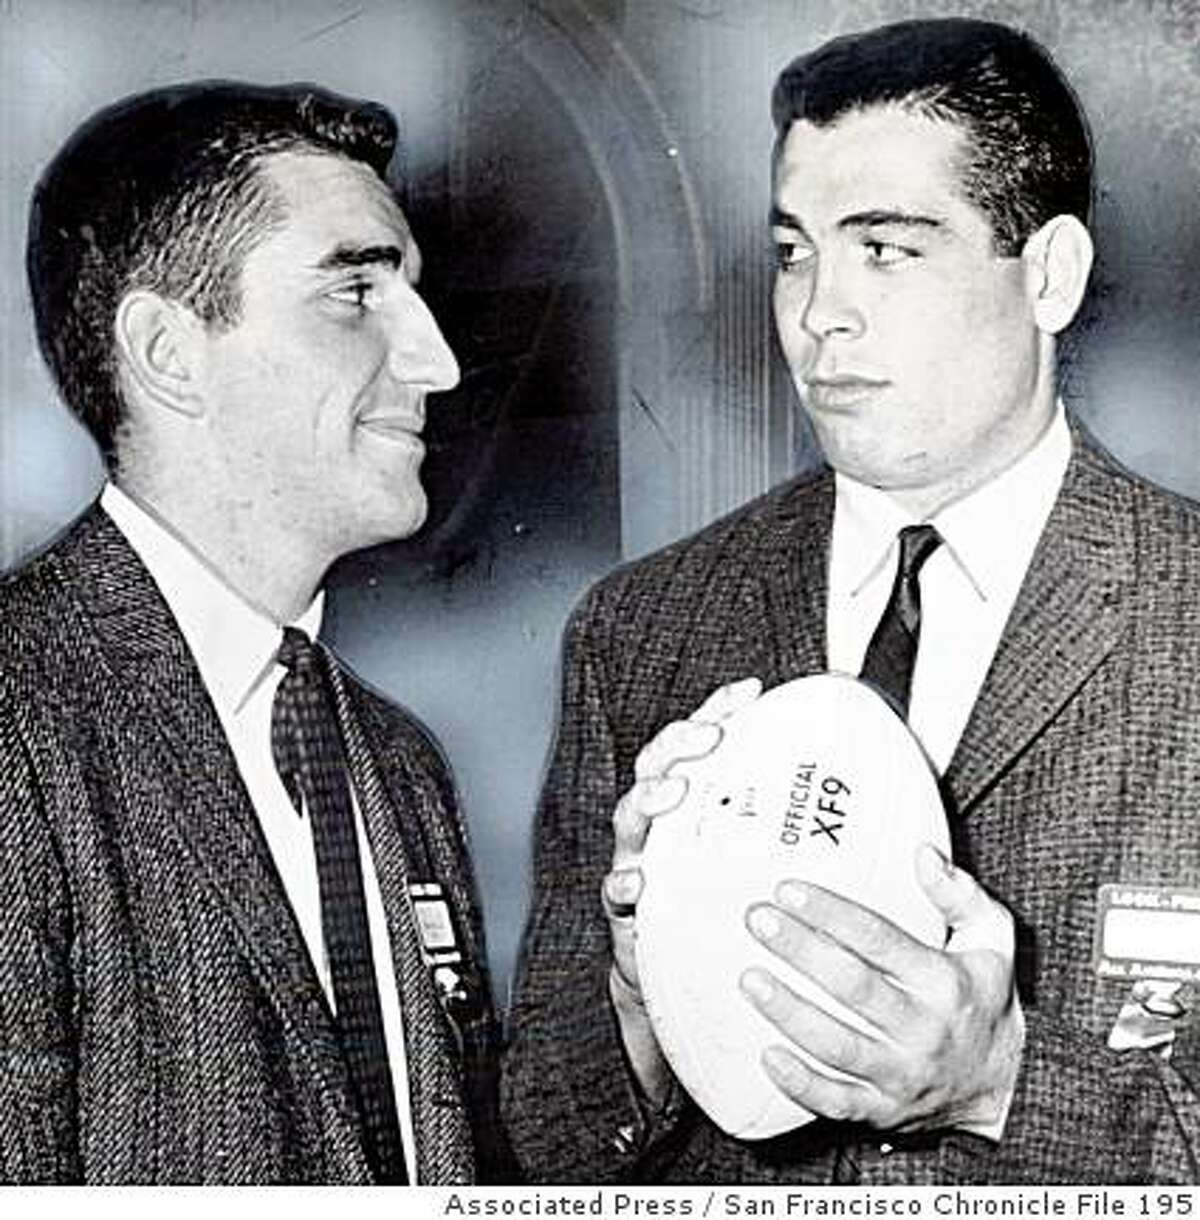 1959_rosebowl.jpg December 5, 1958 - Iowa QB Randy Duncan, left, was named on the AP All-America team and California QB Joe Kapp. They met last night in New York where they are being honored for their gridiron achievements.Associated Press/ San Francisco Chronicle File 1958